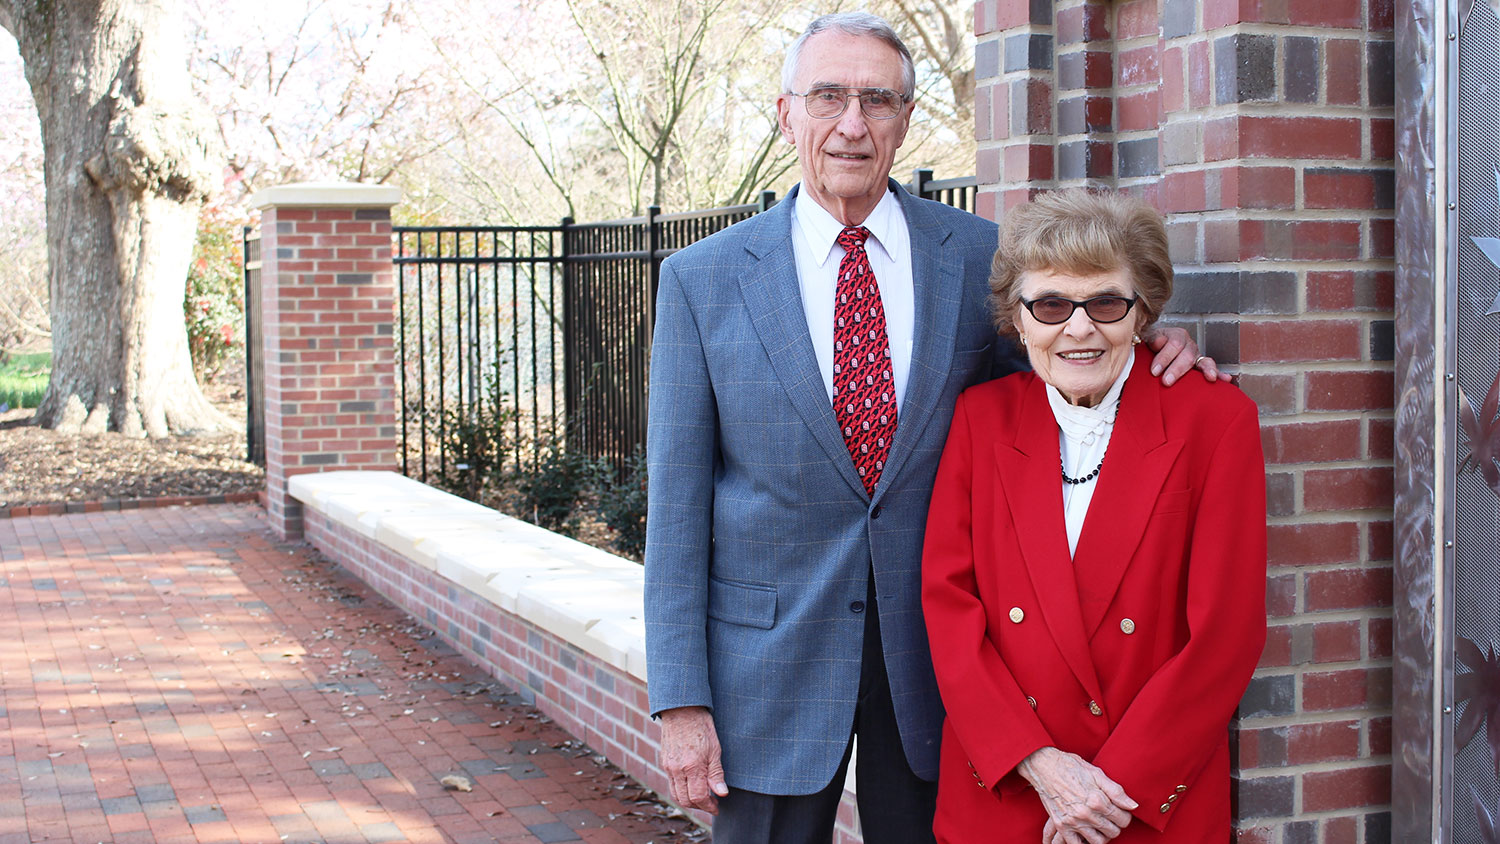 Drs. Charles and Marilyn Stuber